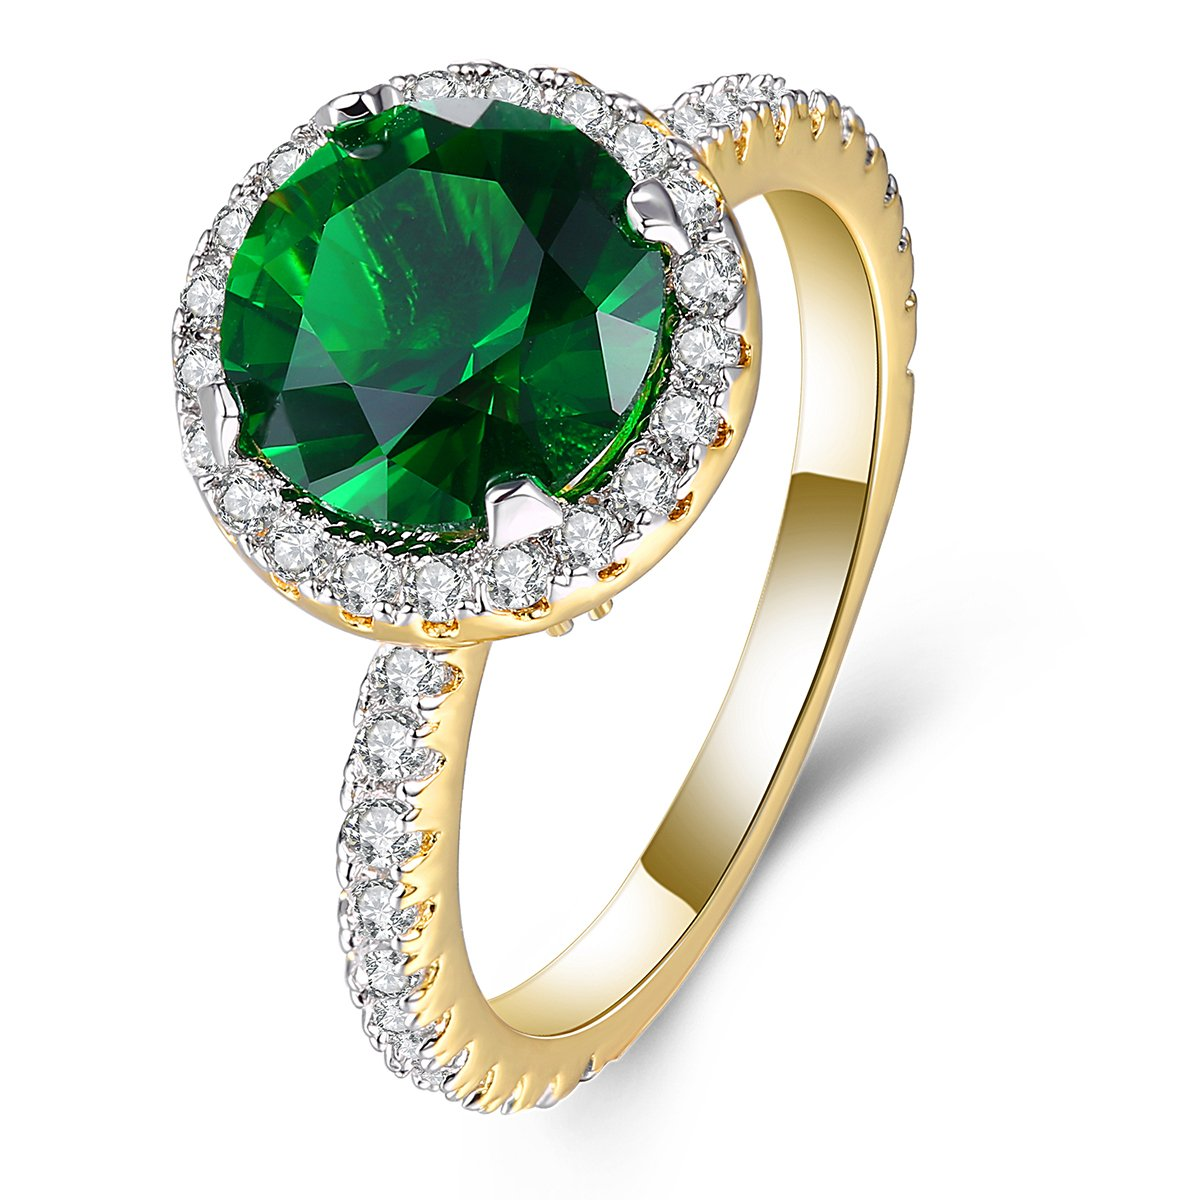 Lady's Rings AAA Cubic Zirconia Gold Rhodium Plated Ring Exquisite Dainty Elegant Jewelry Mother 's Day Gift Size 5-10 Jiangyue JWZ2324_Green